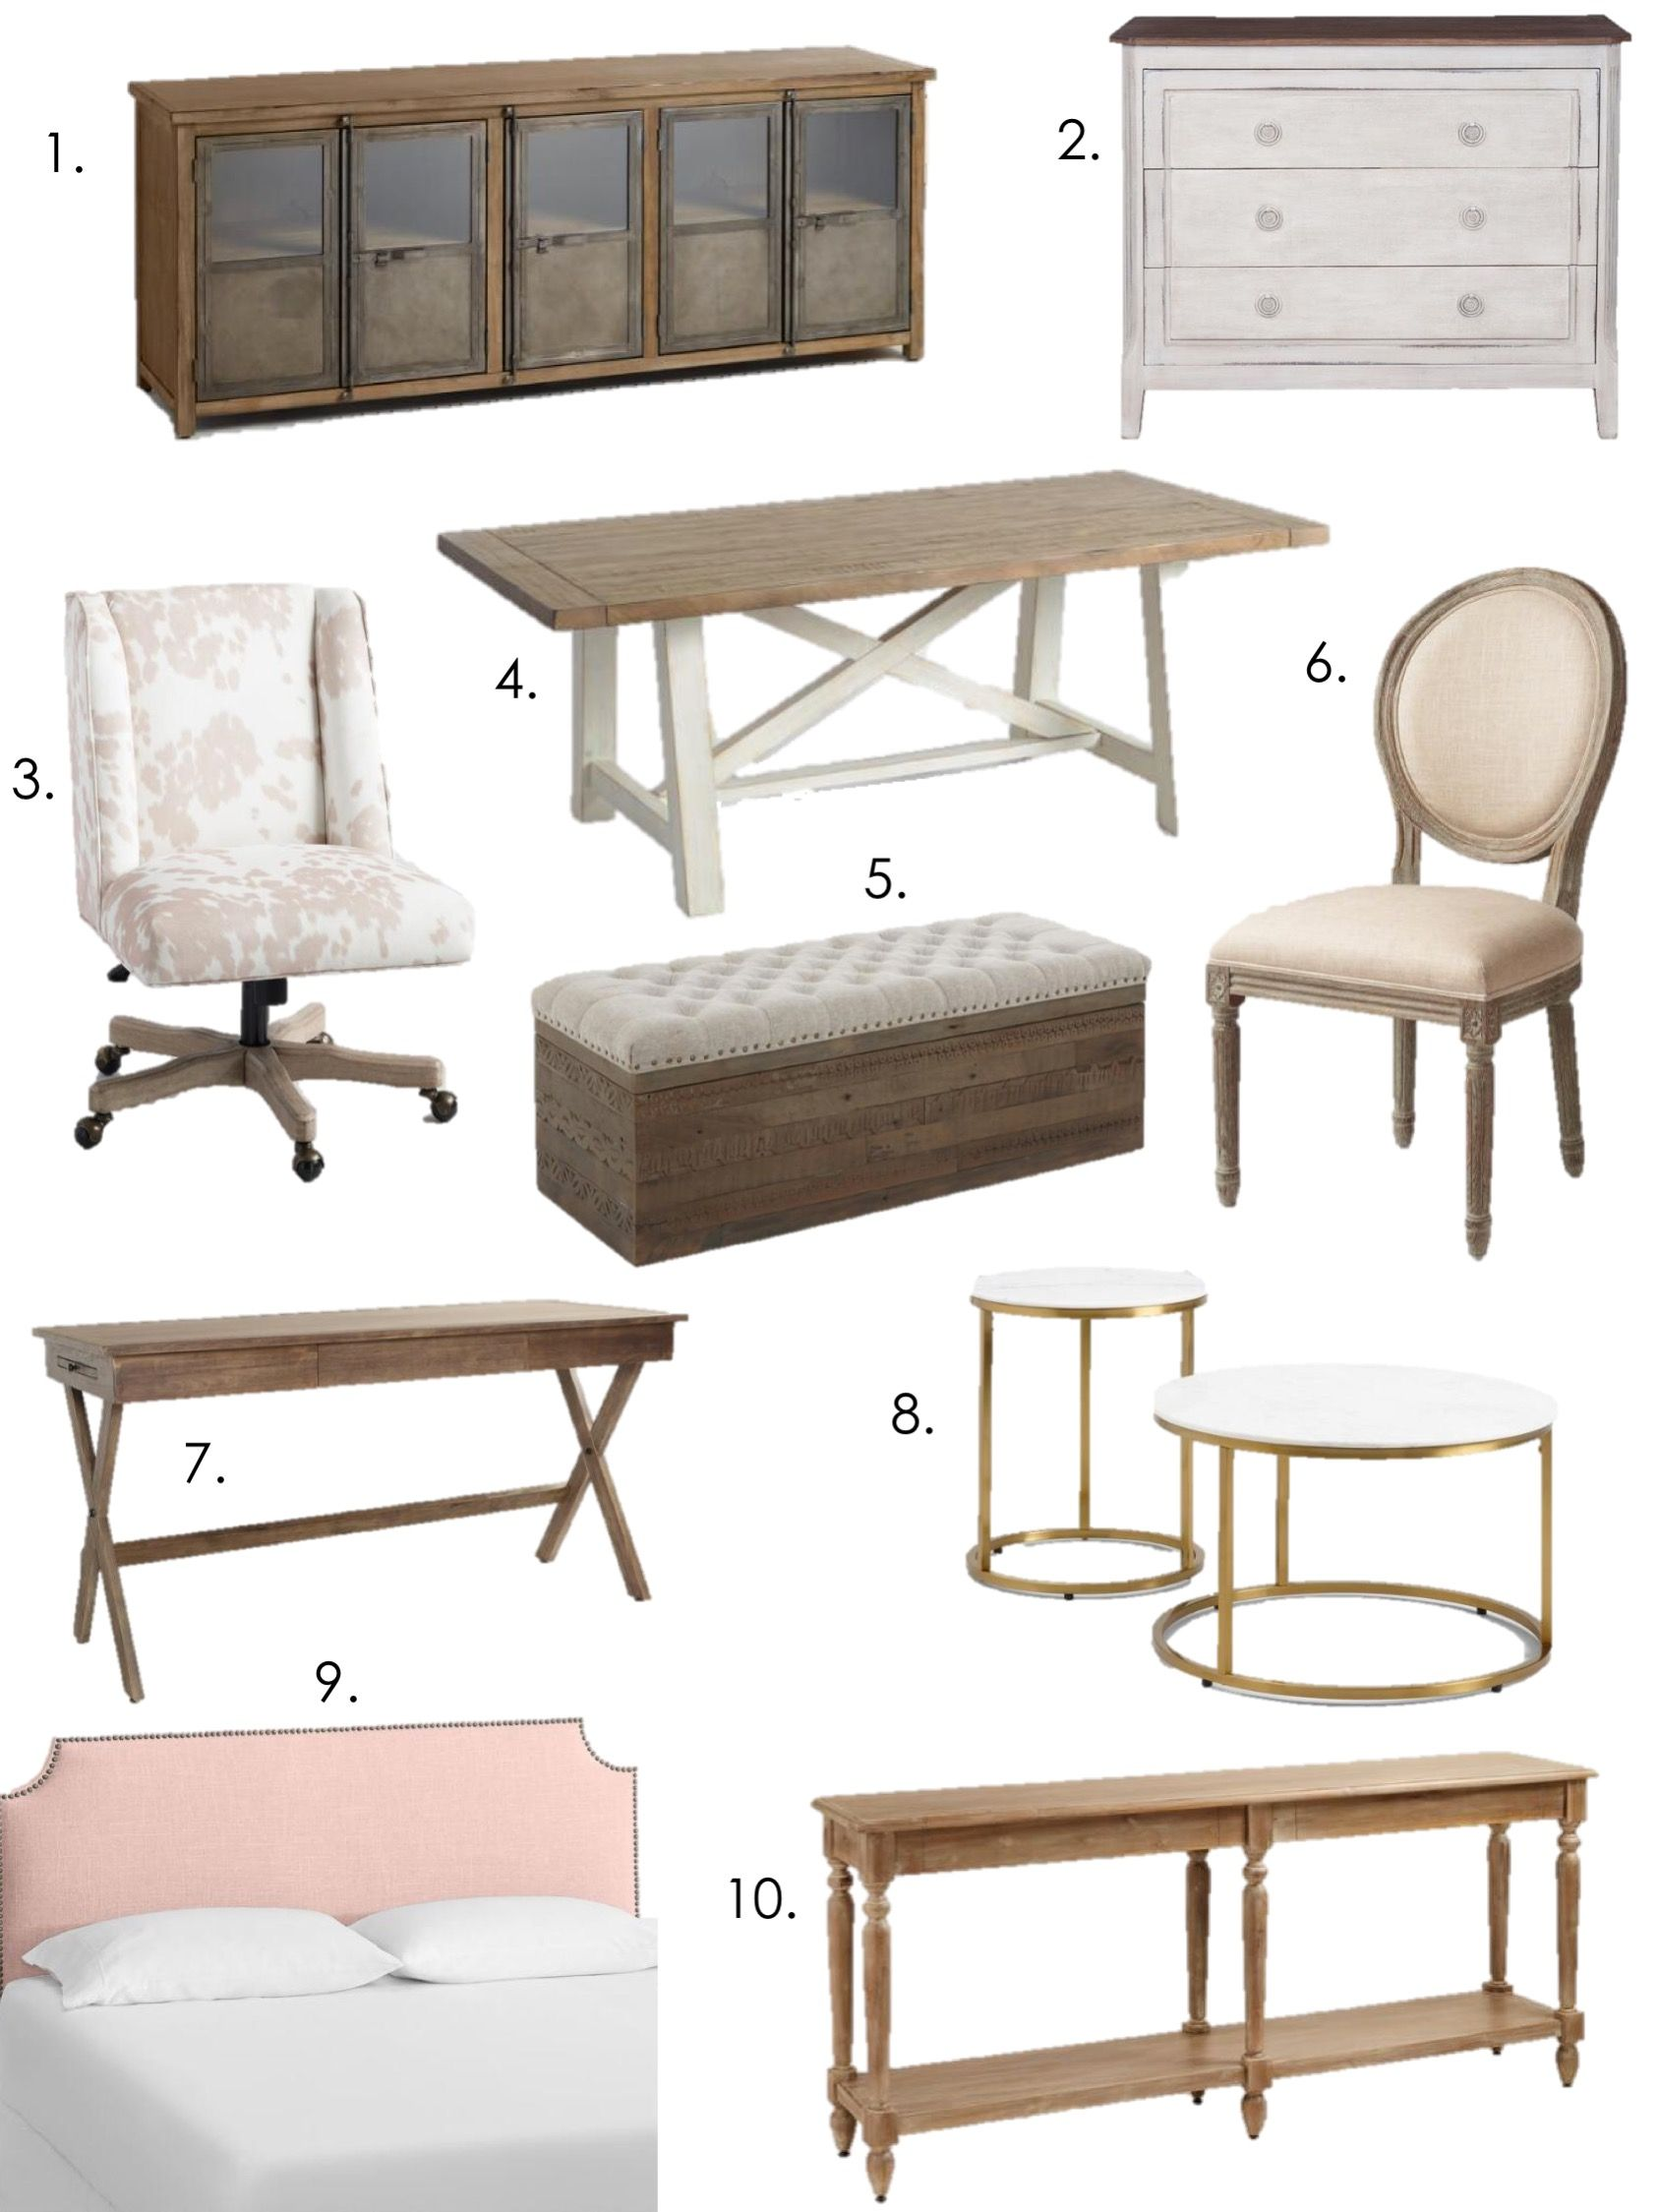 Remarkable World Market Furniture Sale Favorites 40 Off All Pieces Ncnpc Chair Design For Home Ncnpcorg